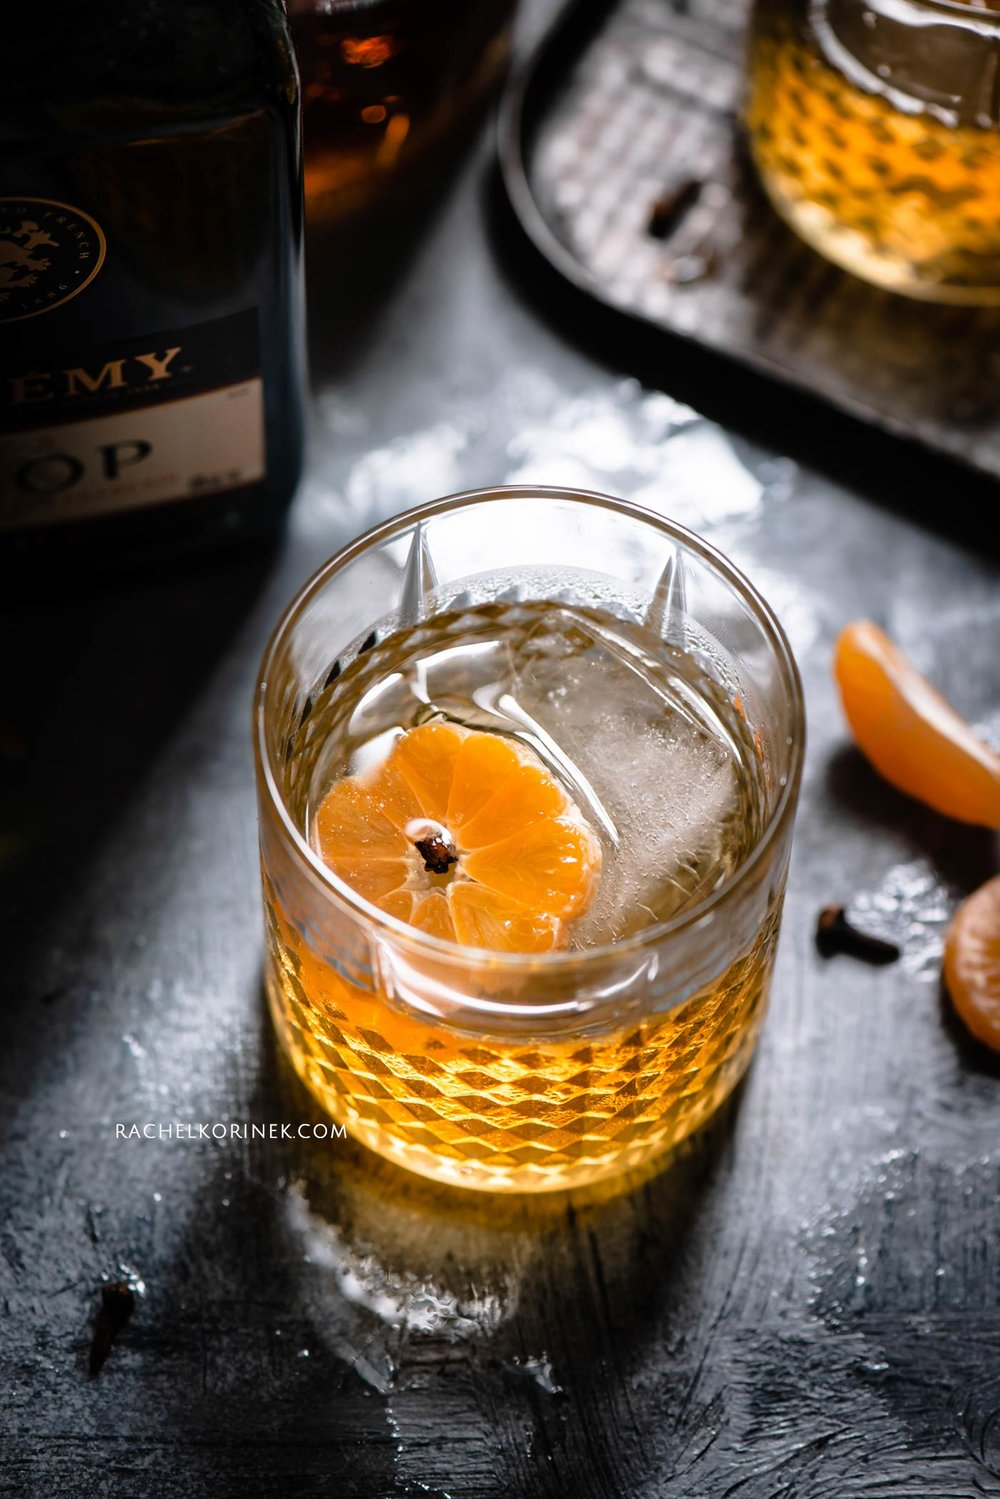 Rachel Korinek | Food Photographer Whiskey Sour with Satsuma Juice  Click to check out my latest food photography projects.  #twolovesstudio #beautifulcuisine #foodbloggerpro #foodphotography #learnfoodphotography #foodblogger #learnphotography #foodstyling #lightingtips #naturallight #foodphotographer